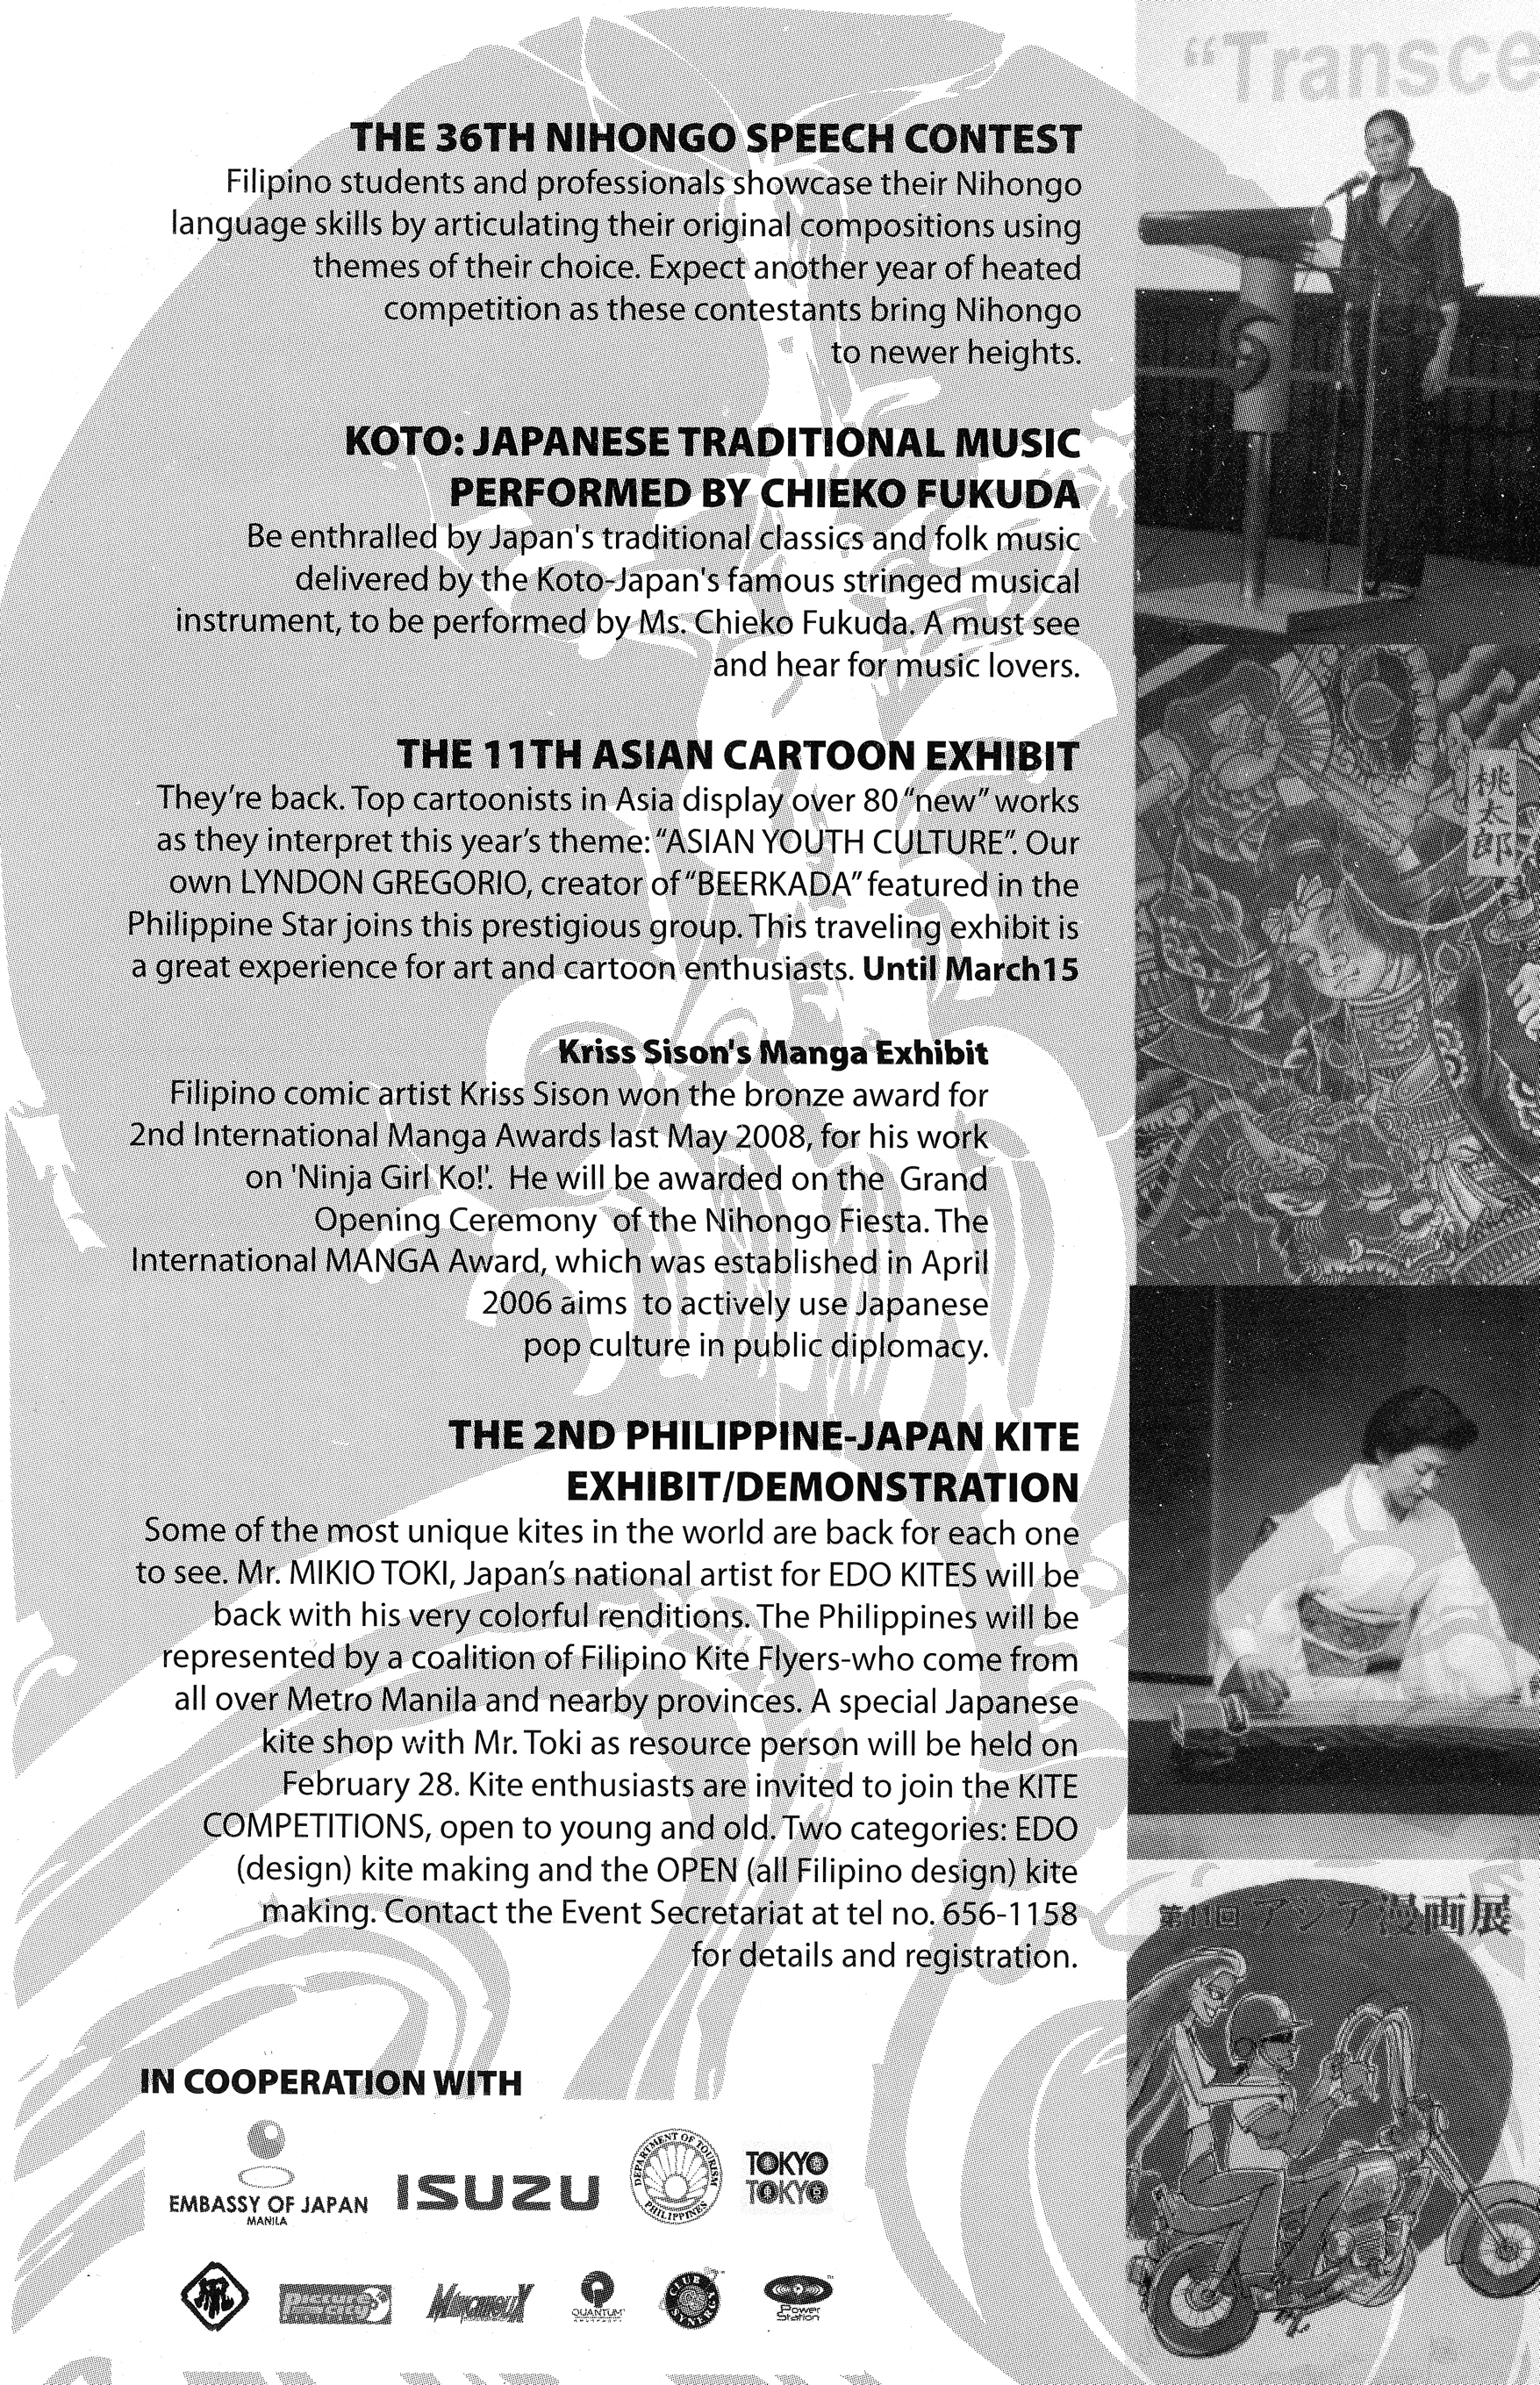 2009 Nihongo Fiesta Schedule SM Mall of Asia Pasay City